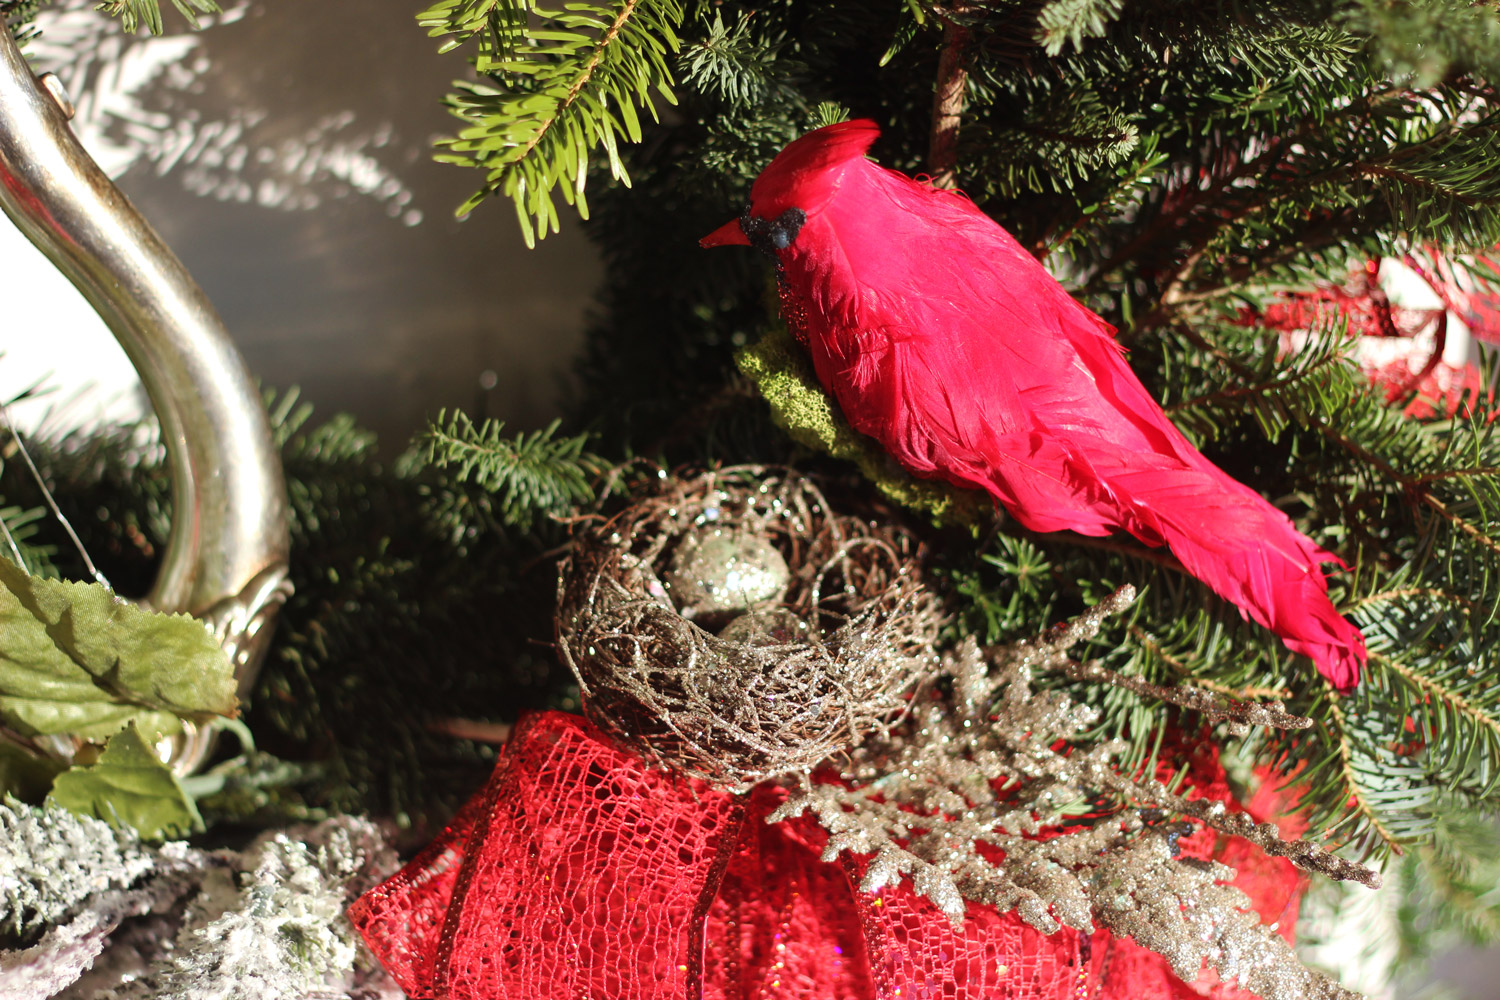 Ah, here's a   beautiful silvery nest with two eggs for the bird to watch. Attach the nest.